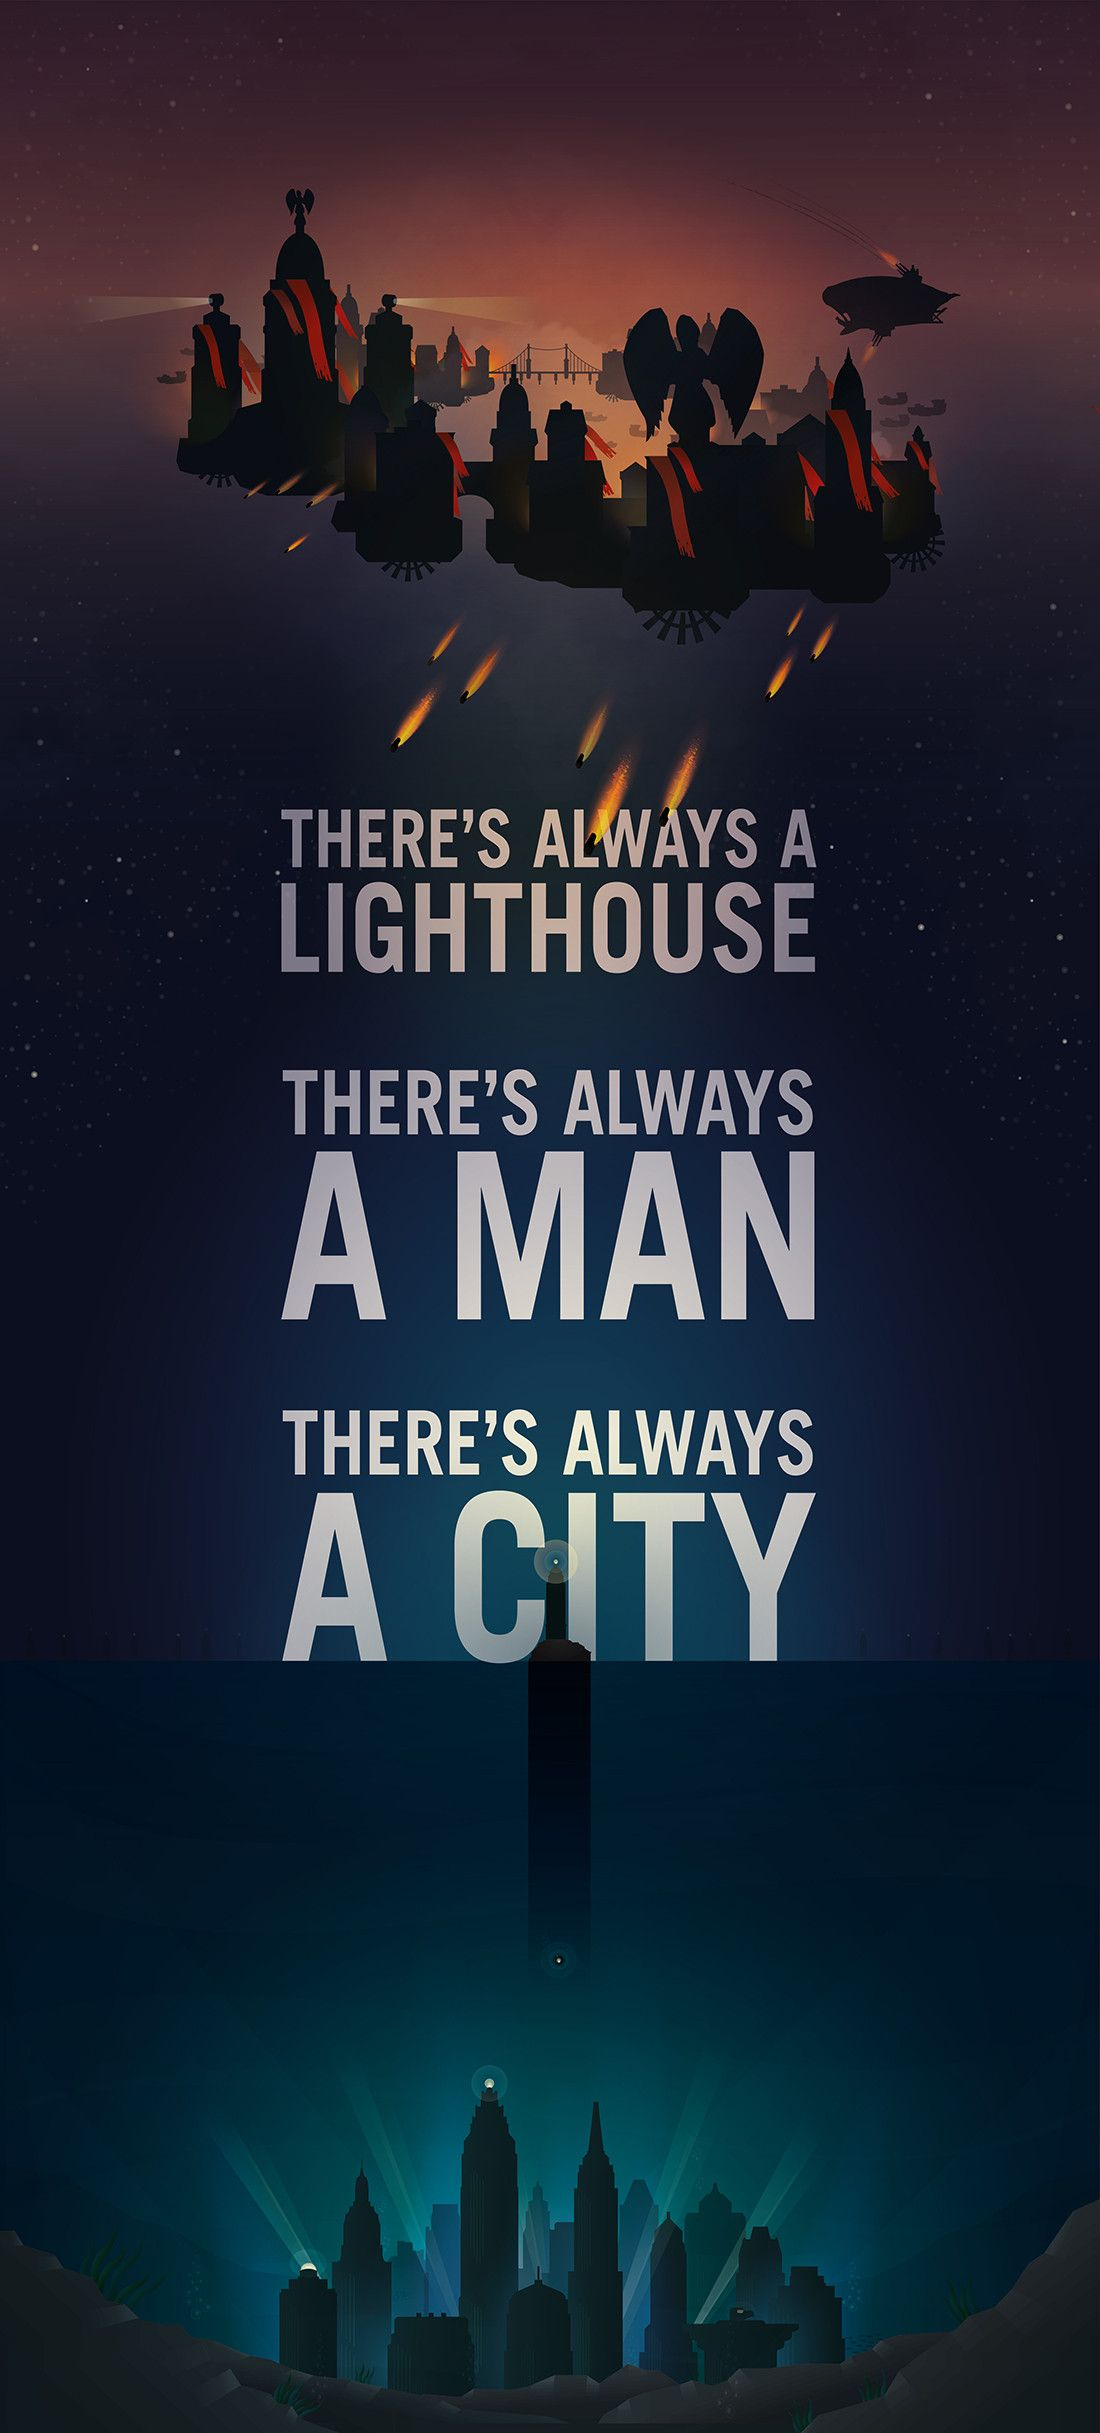 Citaten Weergeven Xbox One : Bioshock quote posters gaming related bioshock game video game